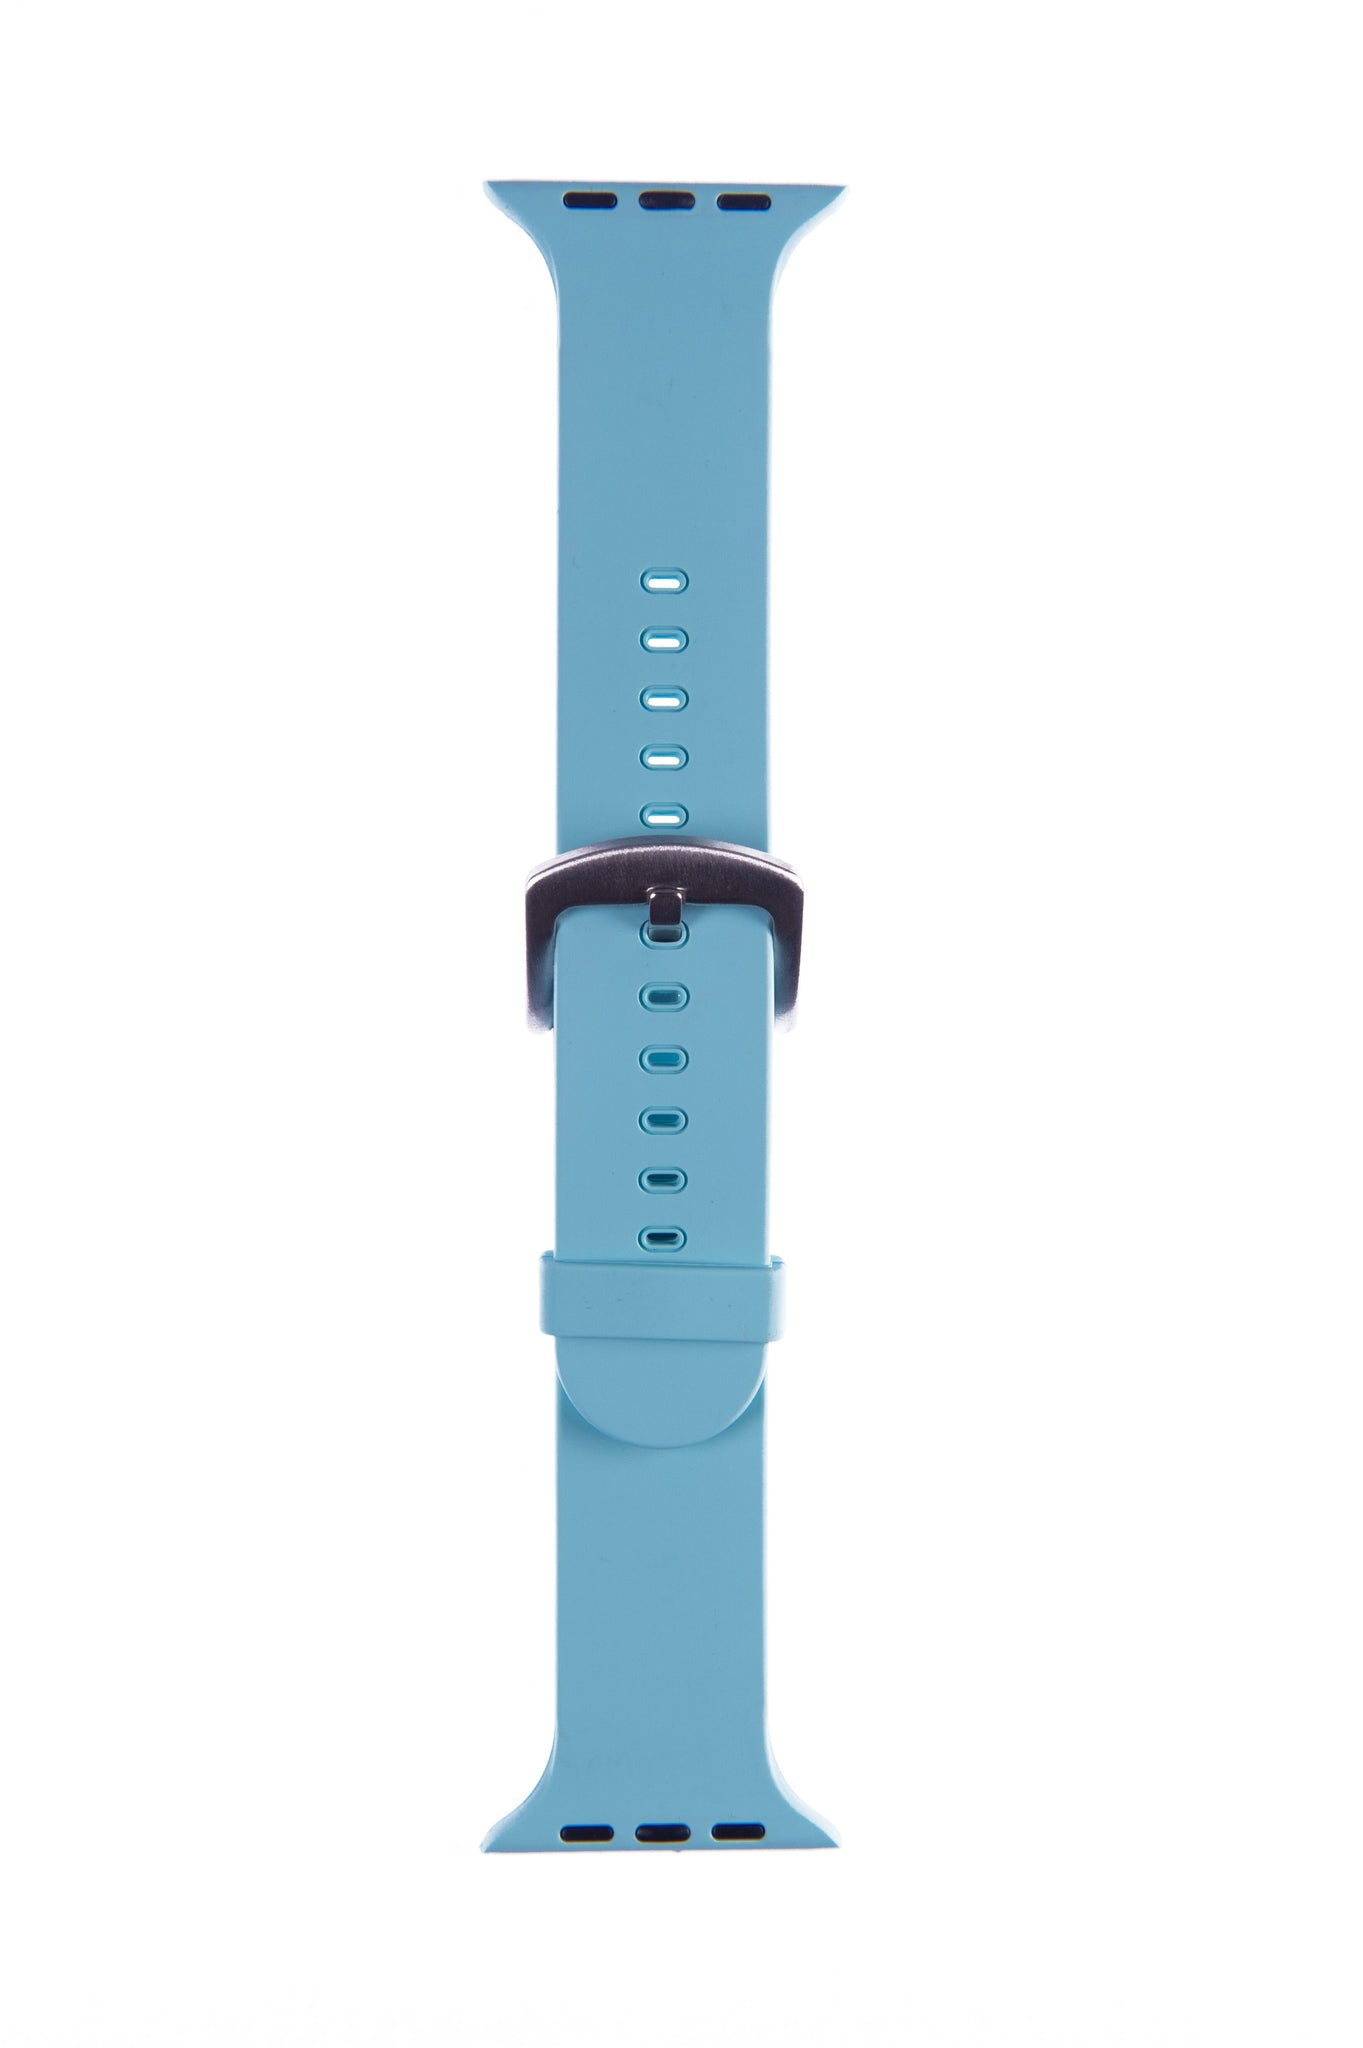 NintyOne Apple watch Strap - Aqua Blue